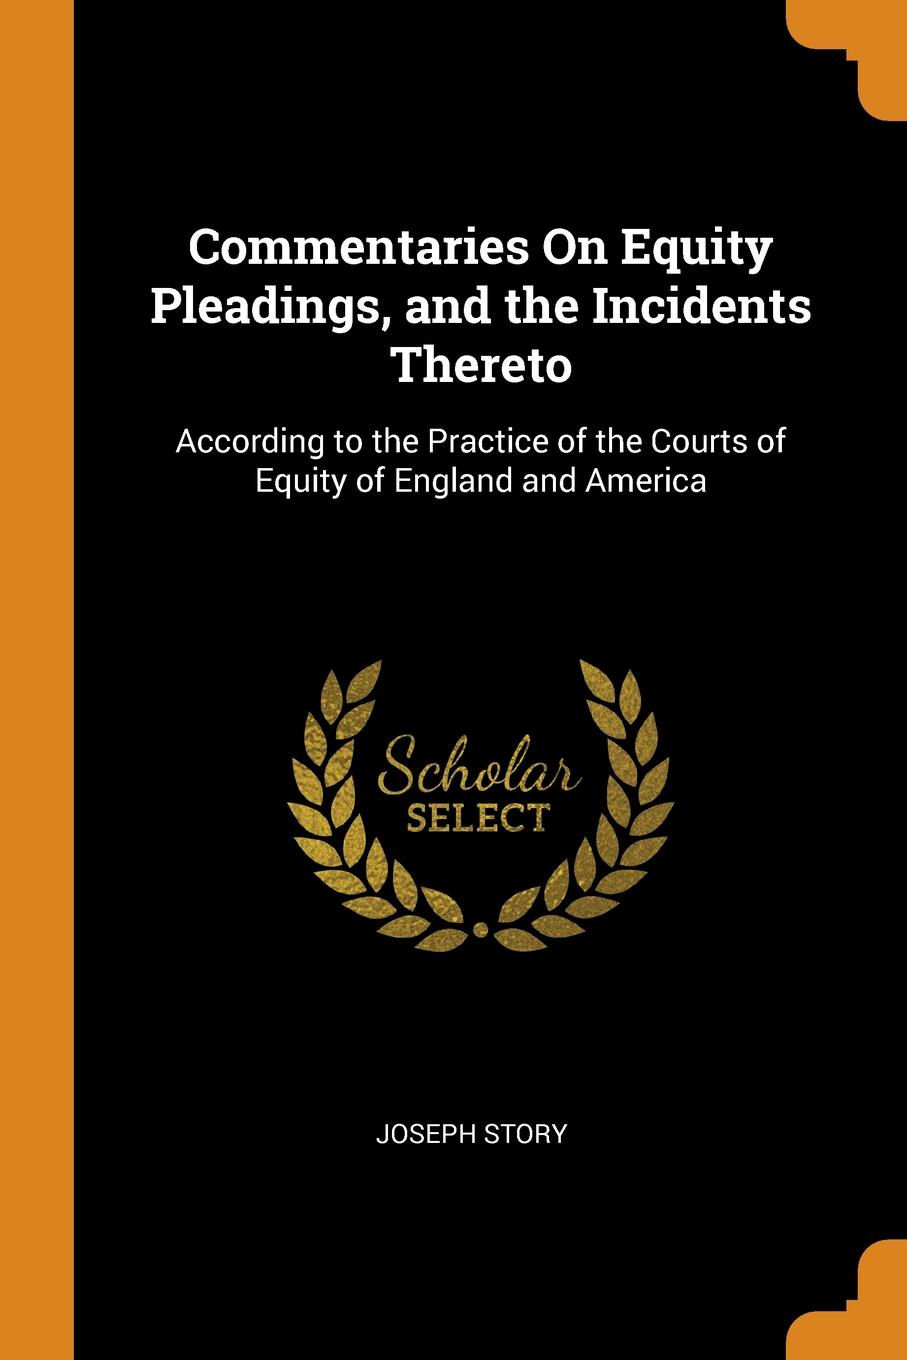 Commentaries On Equity Pleadings, and the Incidents Thereto. According to the Practice of the Courts of Equity of England and America. Joseph Story